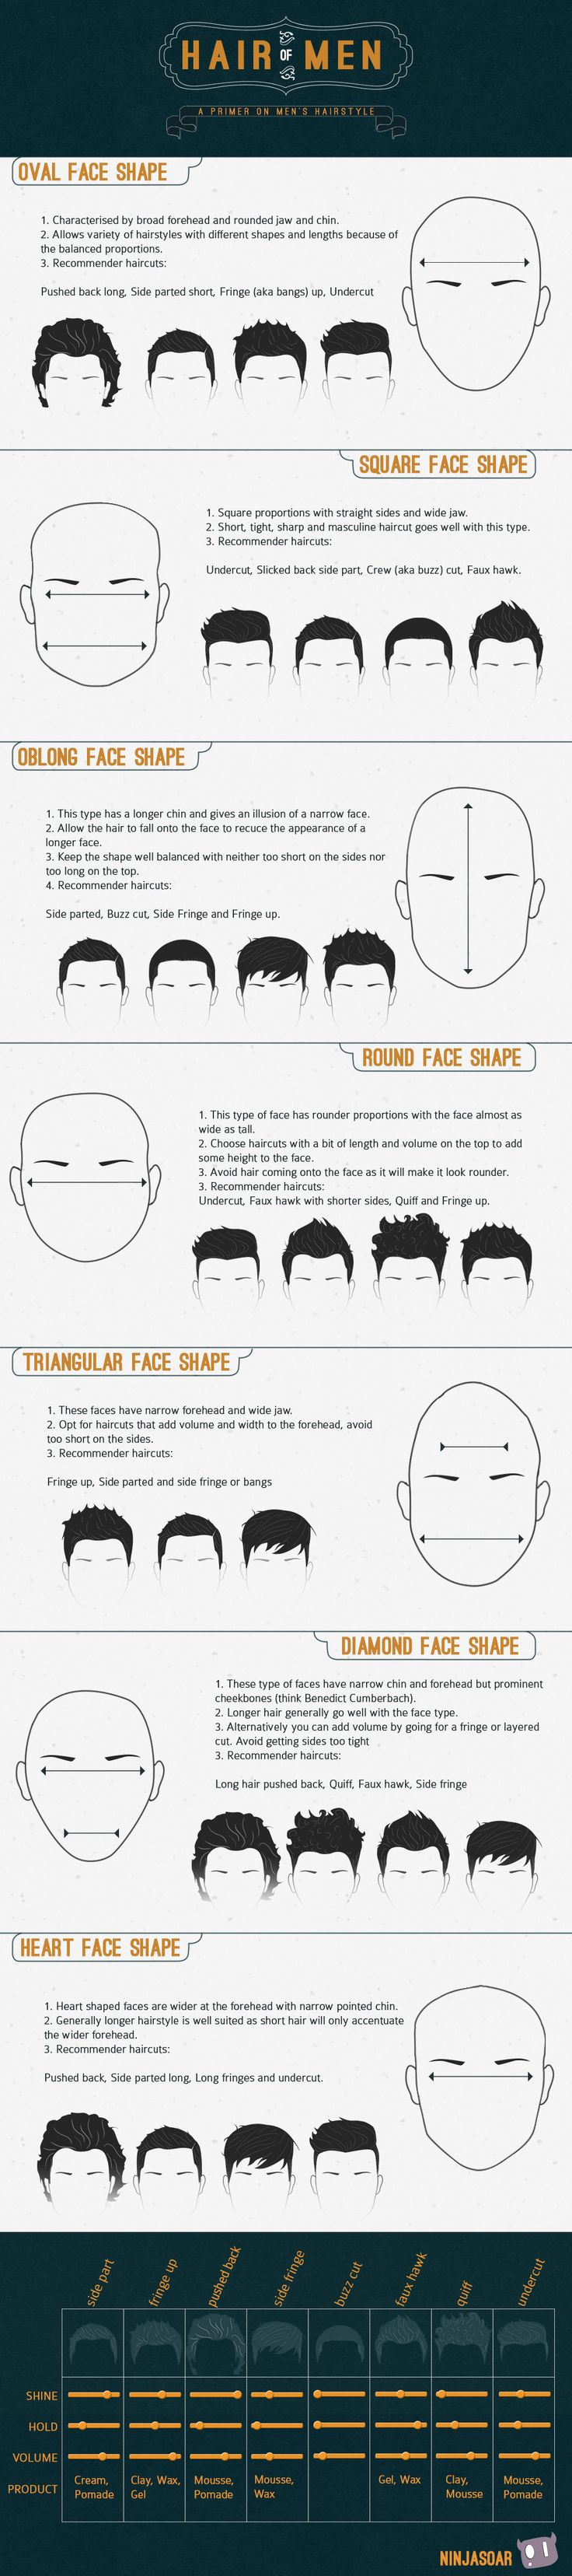 63 best images about diagram haircut on Pinterest | A ...